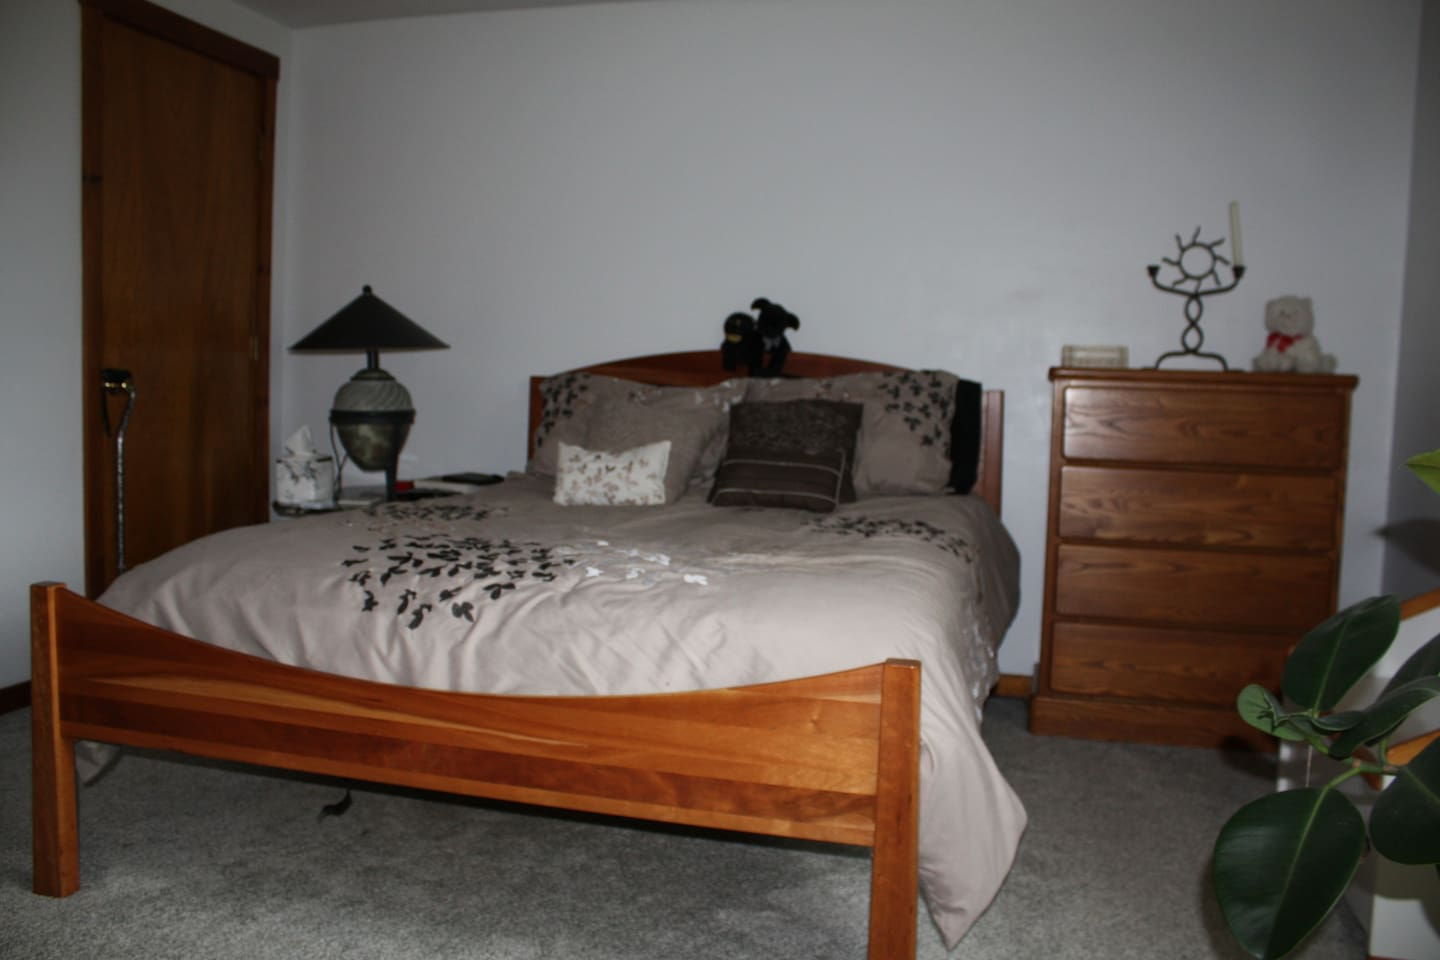 This is the bedroom with queen sized bed.